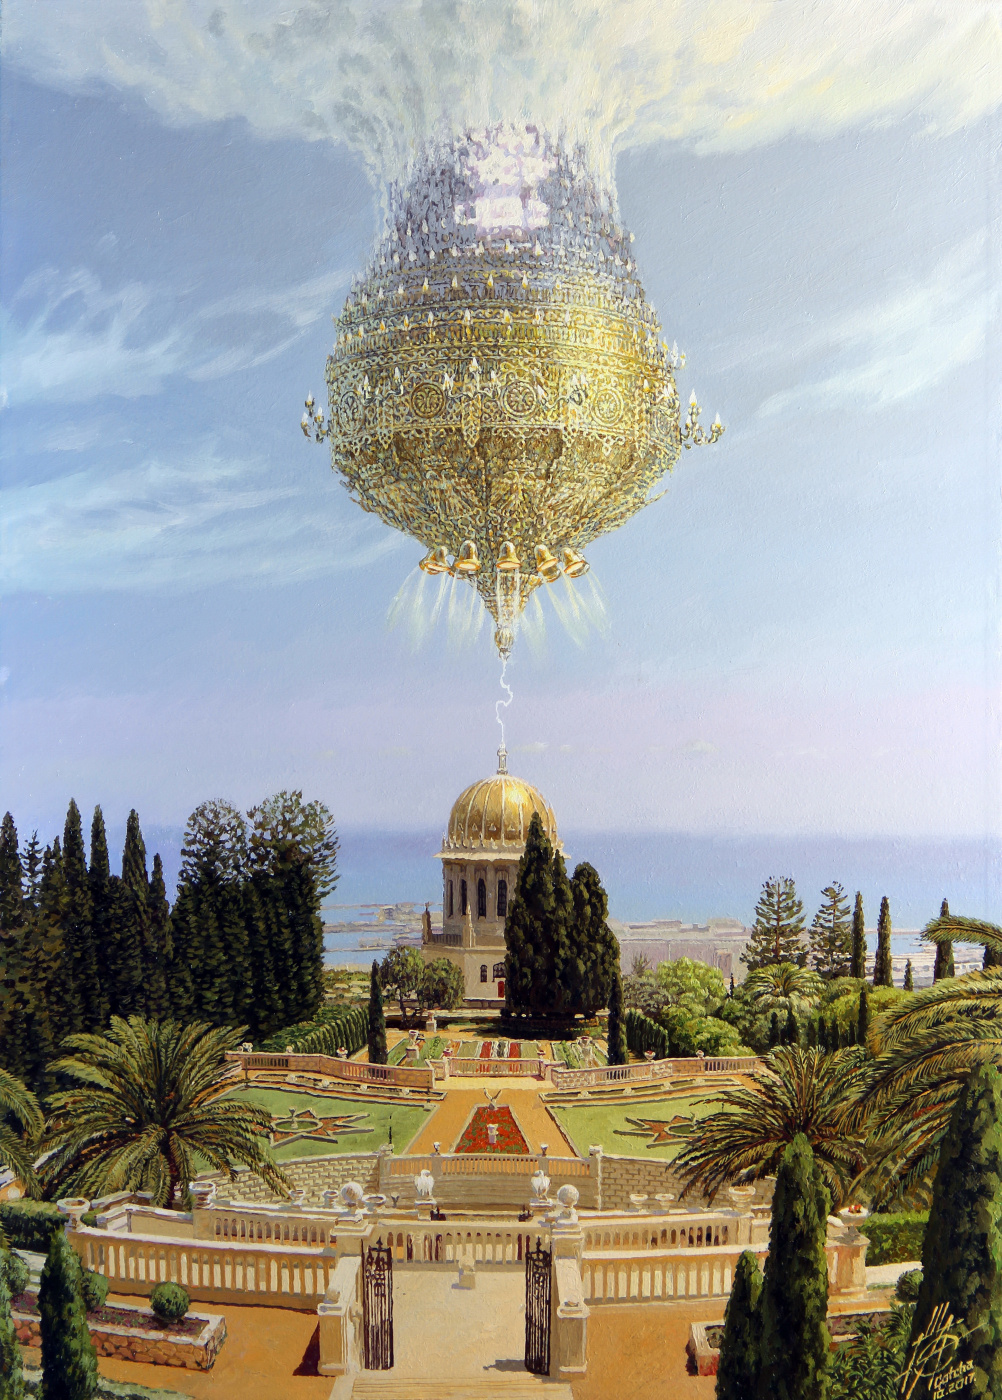 Georgy Ineshin. Visit of alien adherents of the Bahai religion on the Spaceship-prototype of the Chandelier of the Temple of the Holy Sepulcher